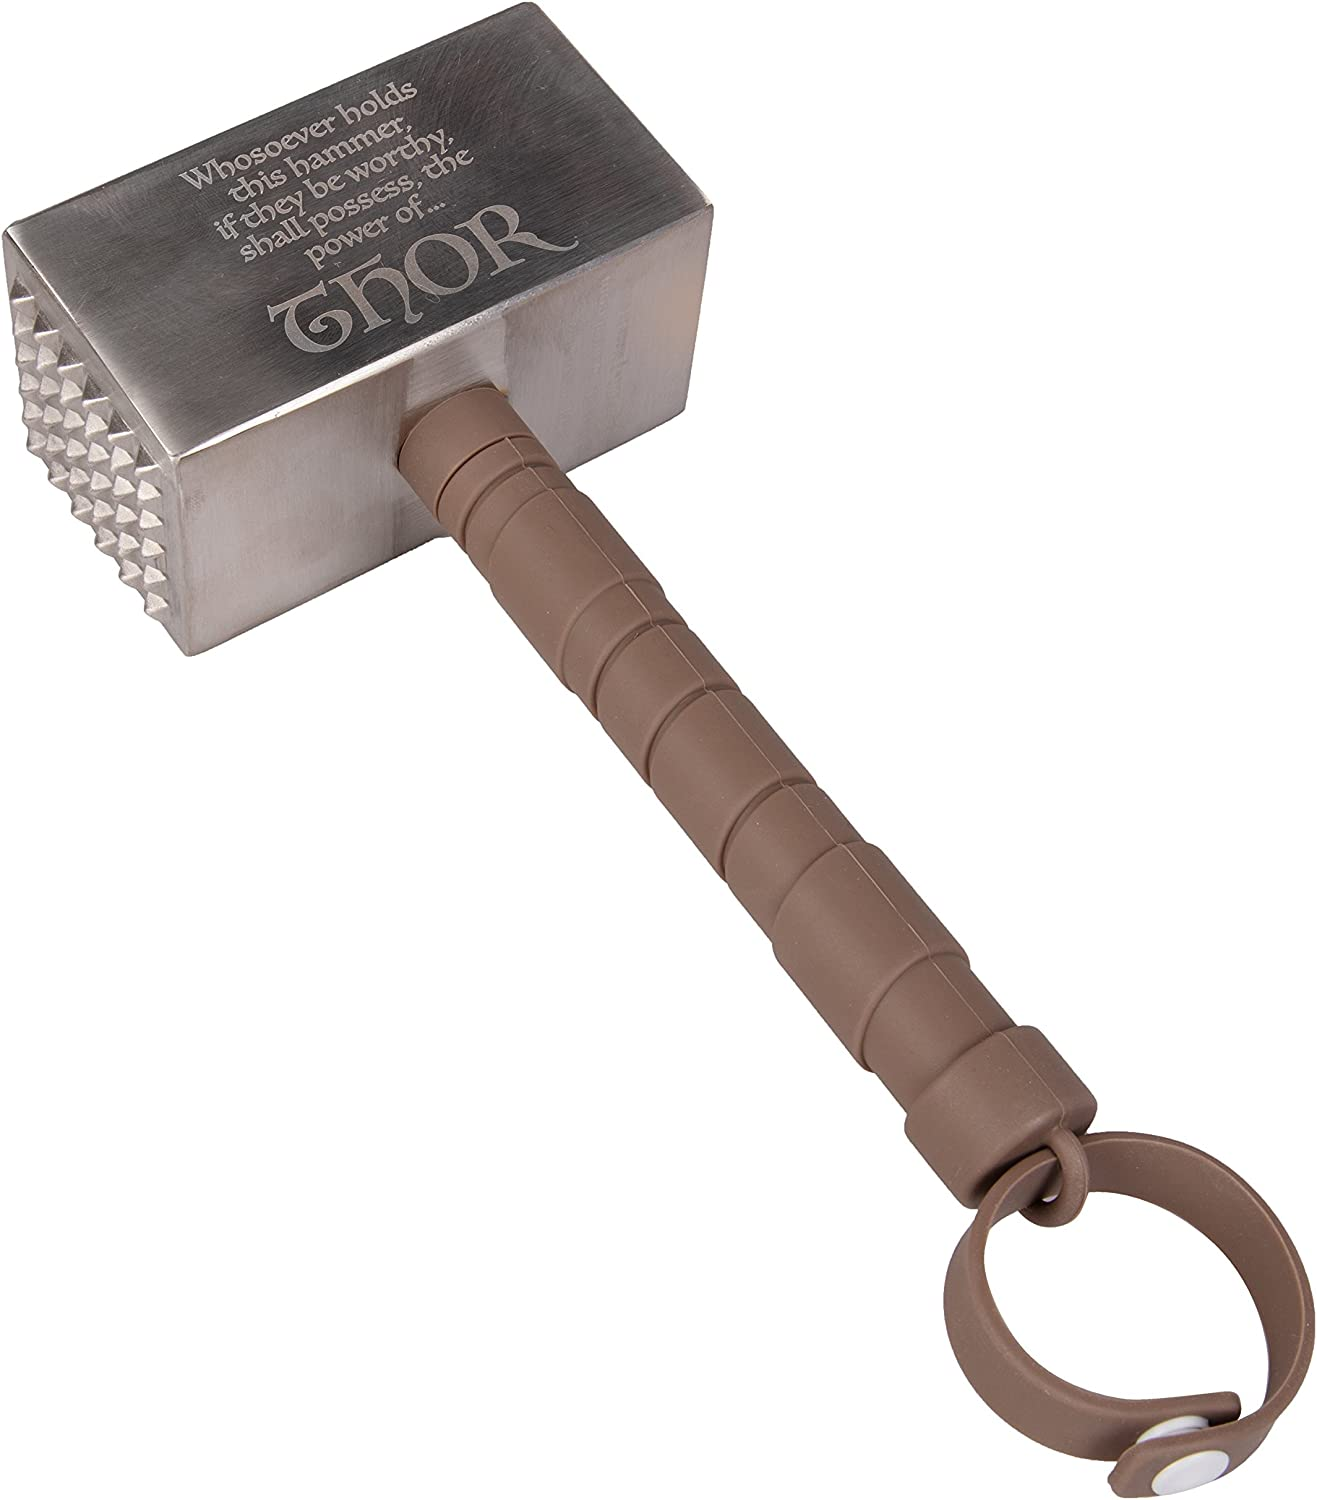 Seven20 All items in the Mail order cheap store Marvel Thor Mjolnir Hammer Tenderizer Tenderize - Y Meat